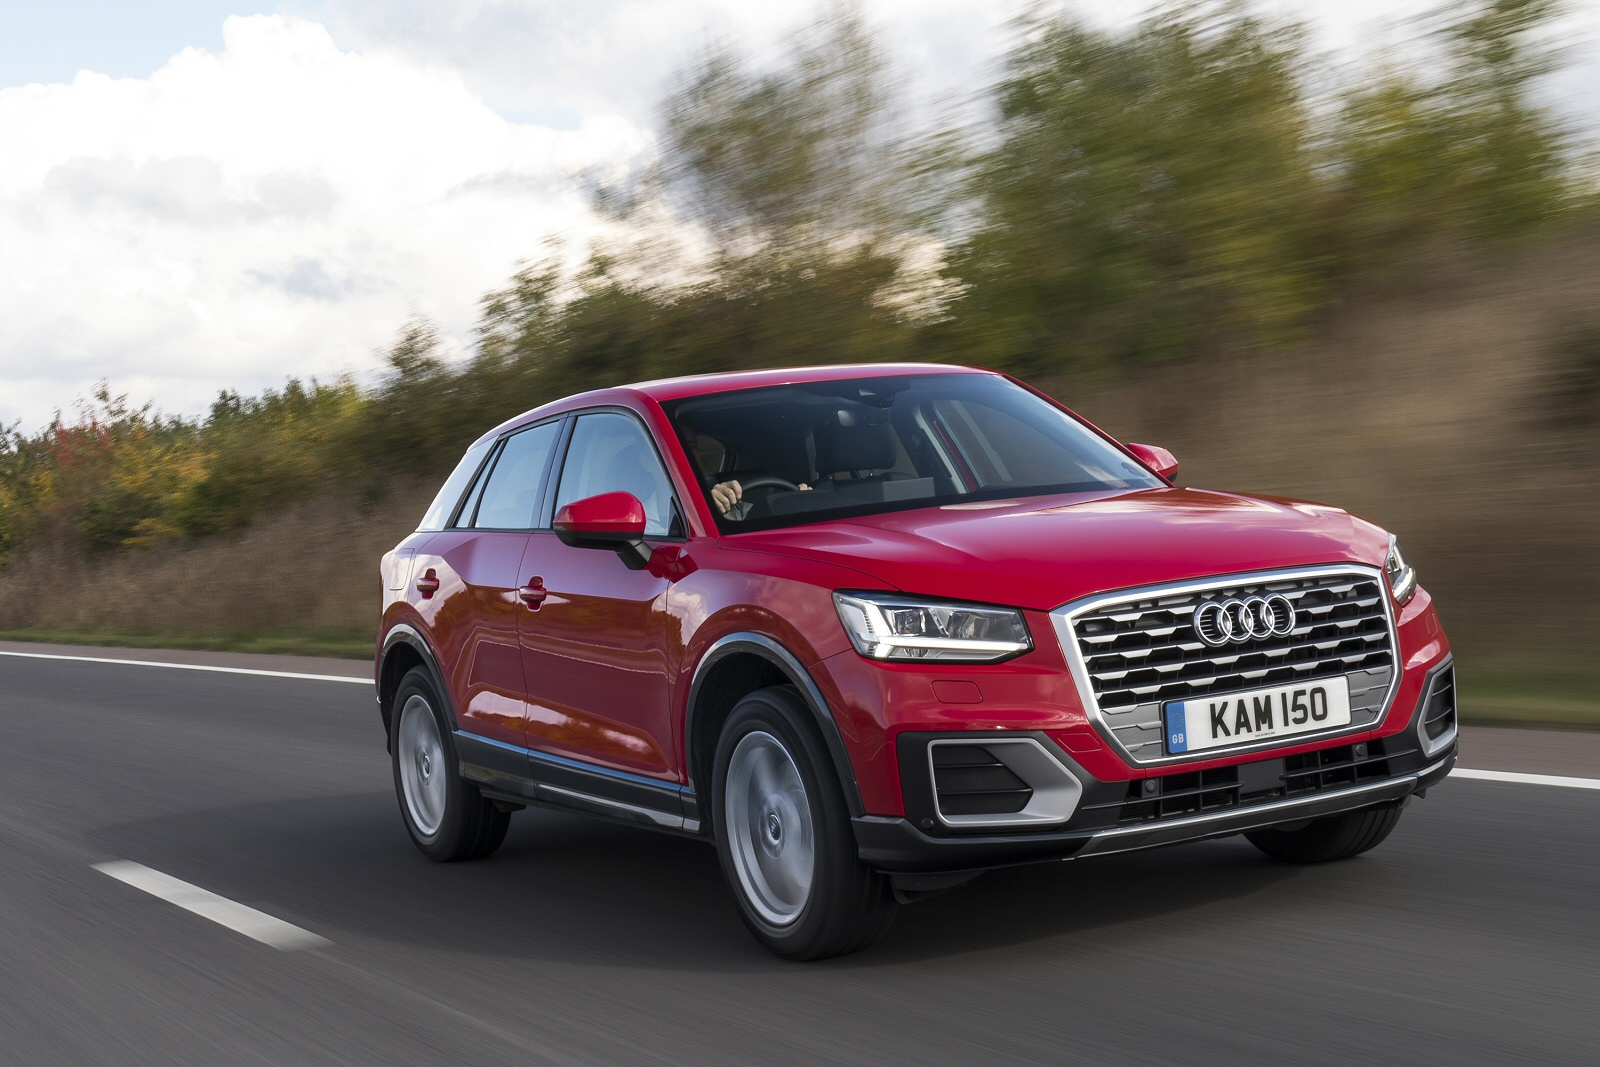 new audi q2 1 6 tdi sport 5dr s tronic diesel estate for. Black Bedroom Furniture Sets. Home Design Ideas